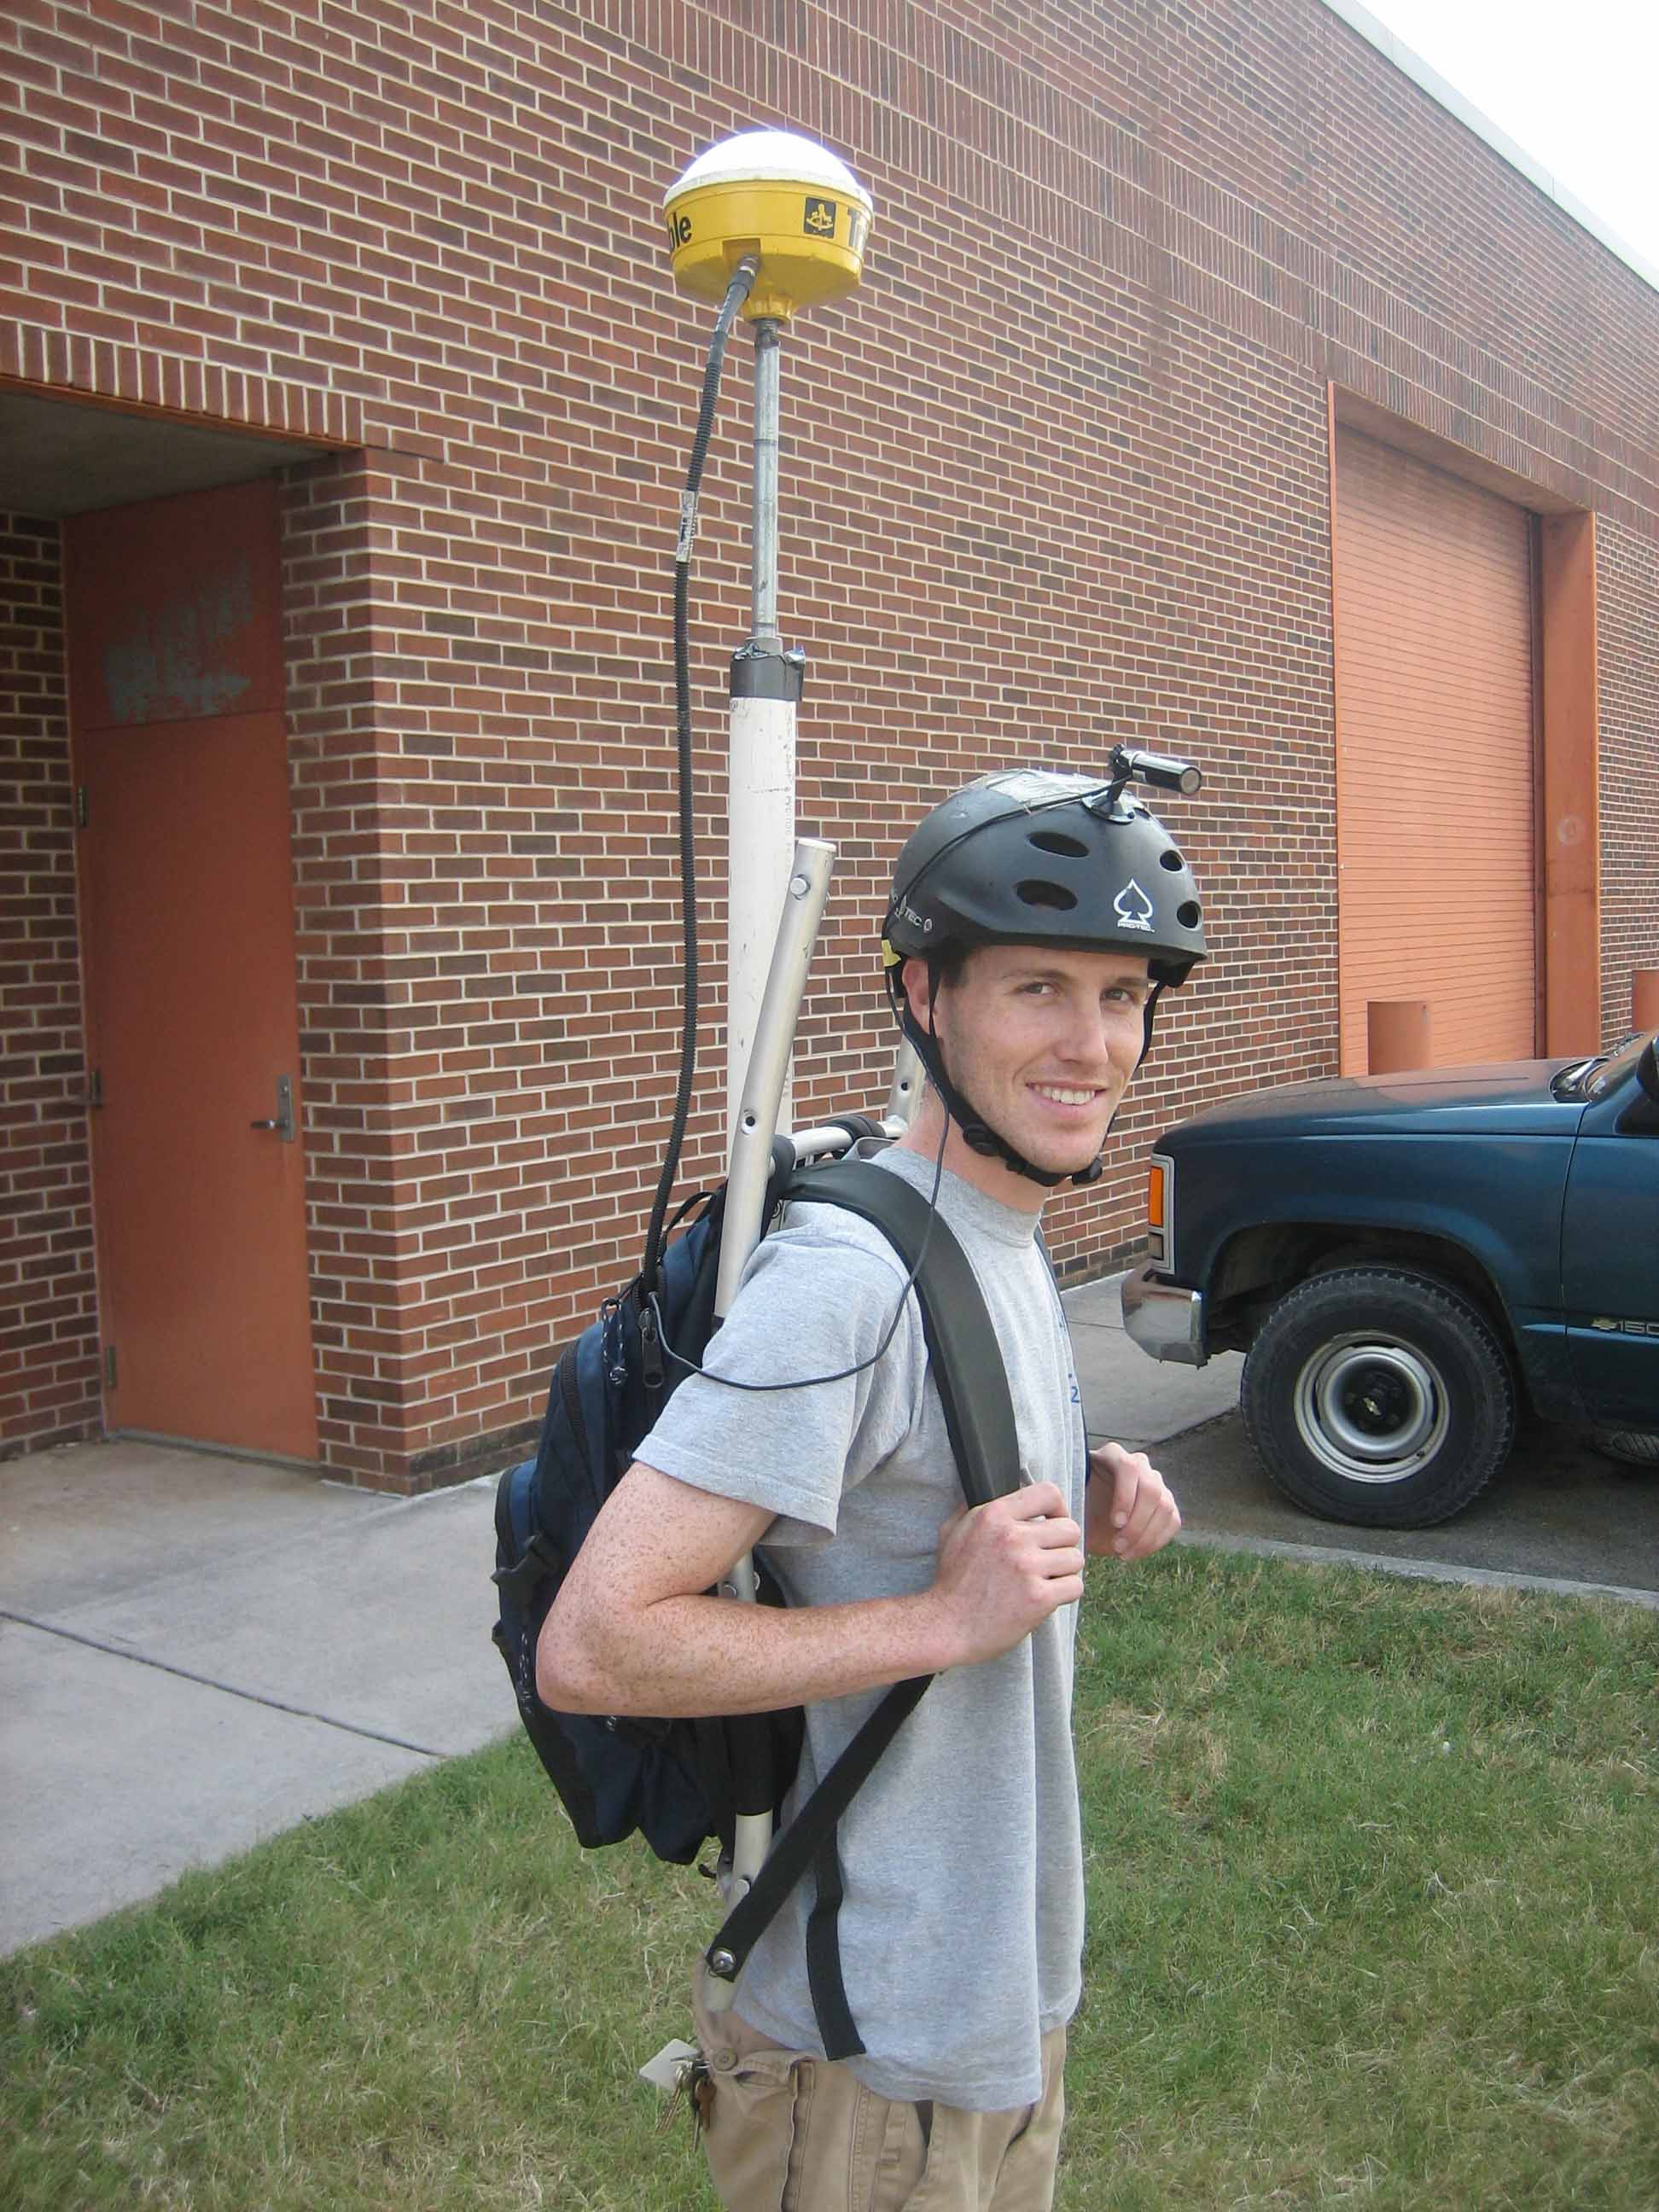 GA Environmental Engineering graduate student Jay Bevington dons GPS tracking device and a video camera for a trail mapping project he did during his undergraduate years at UGA. This project was supposed to produce a program that was like Google Street View for trails. He's currently working near Venice, Italy through the Trans Atlantic Precision Agricultural Consortium.